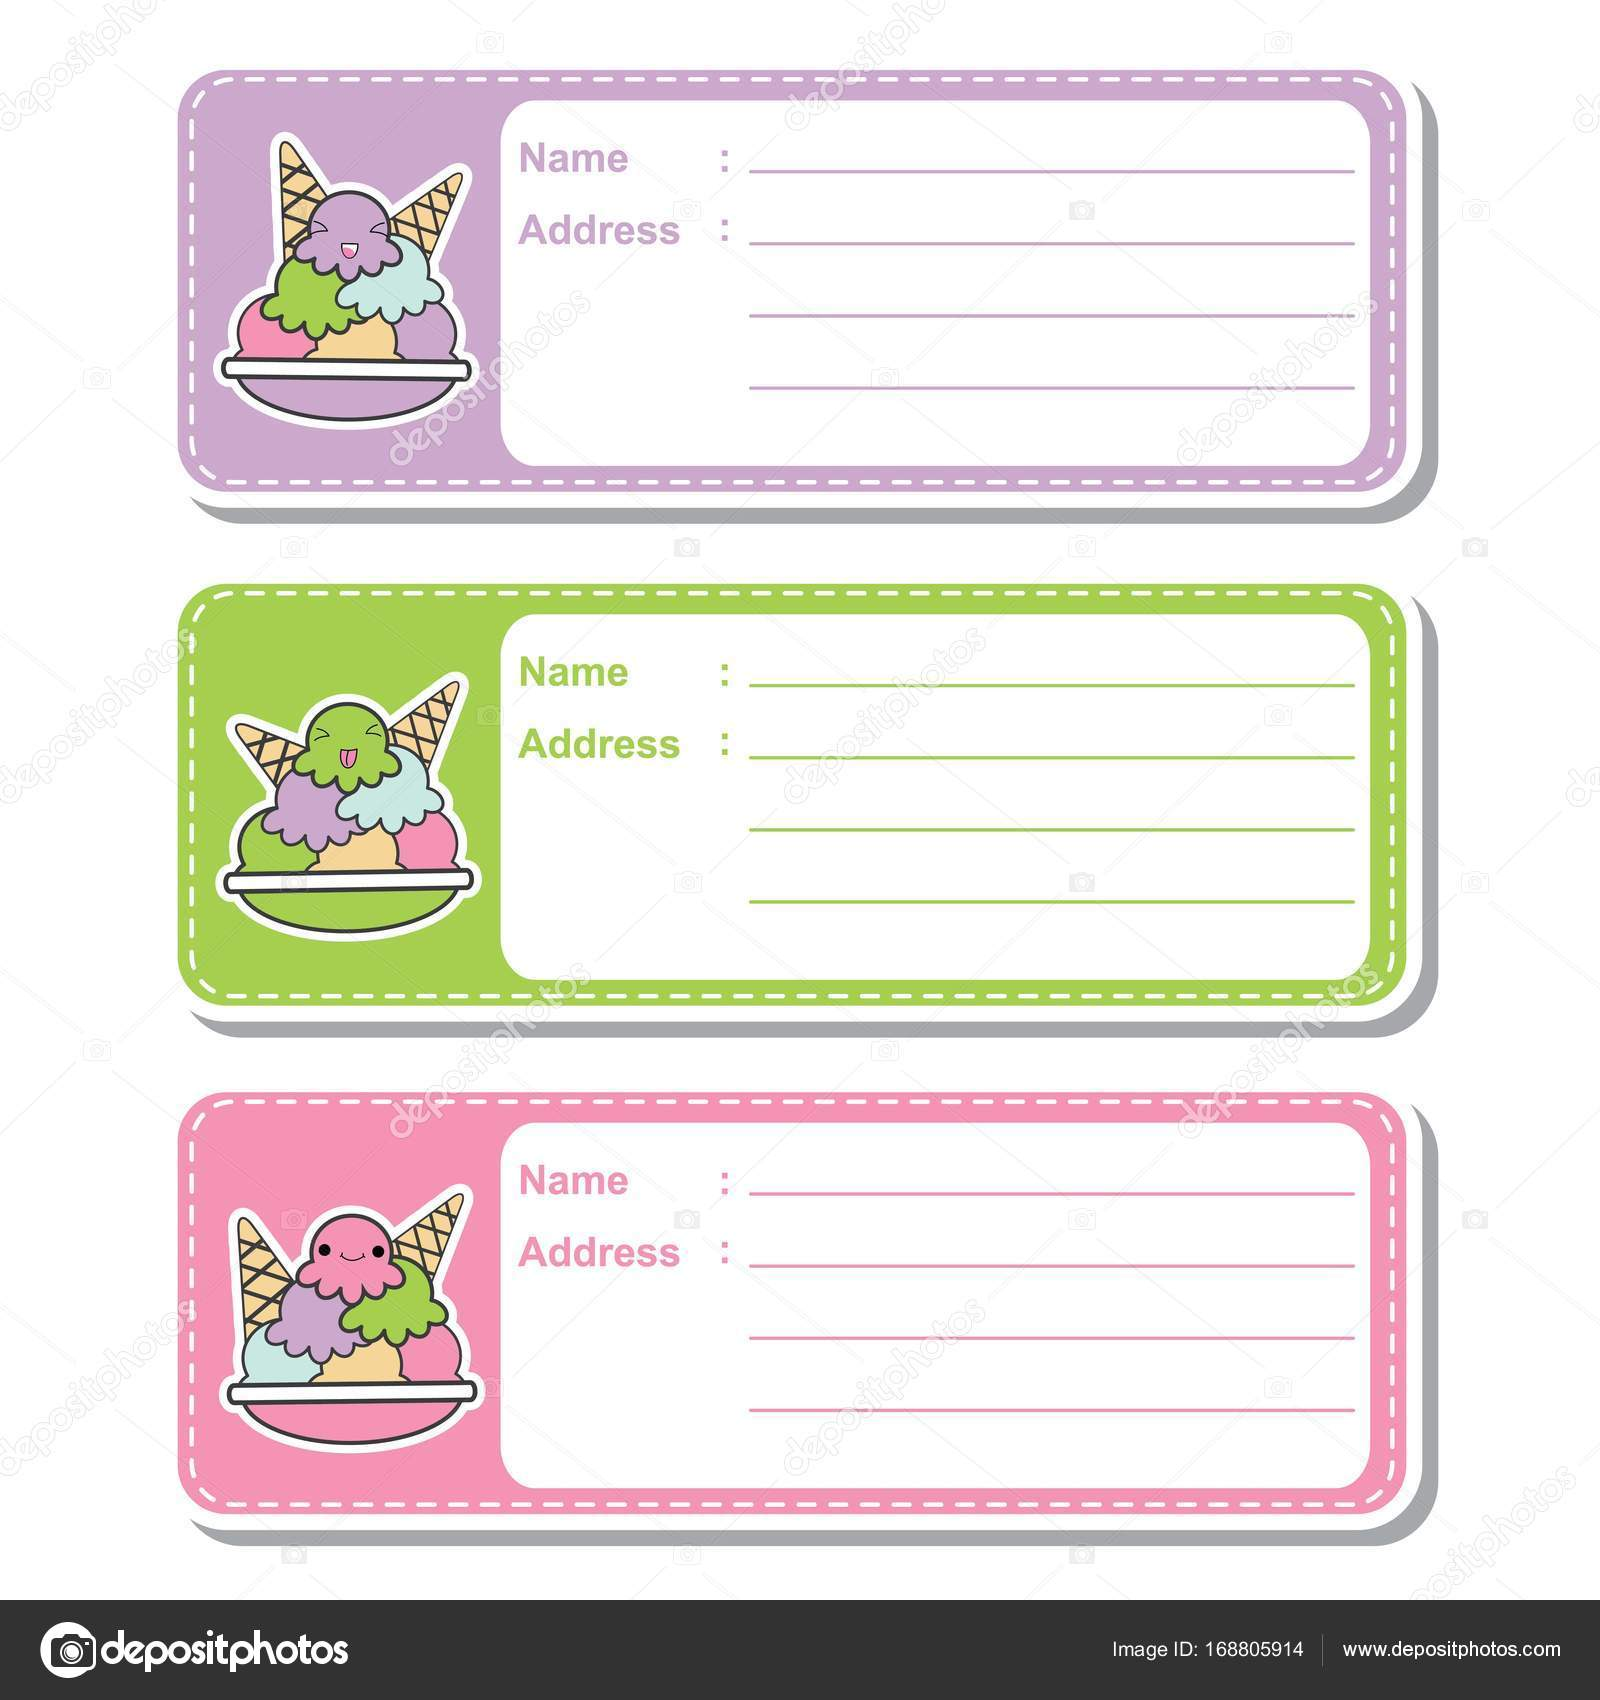 Vector Cartoon Illustration With Cute Ice Creams On Colorful Background Suitable For Kid Address Label Design